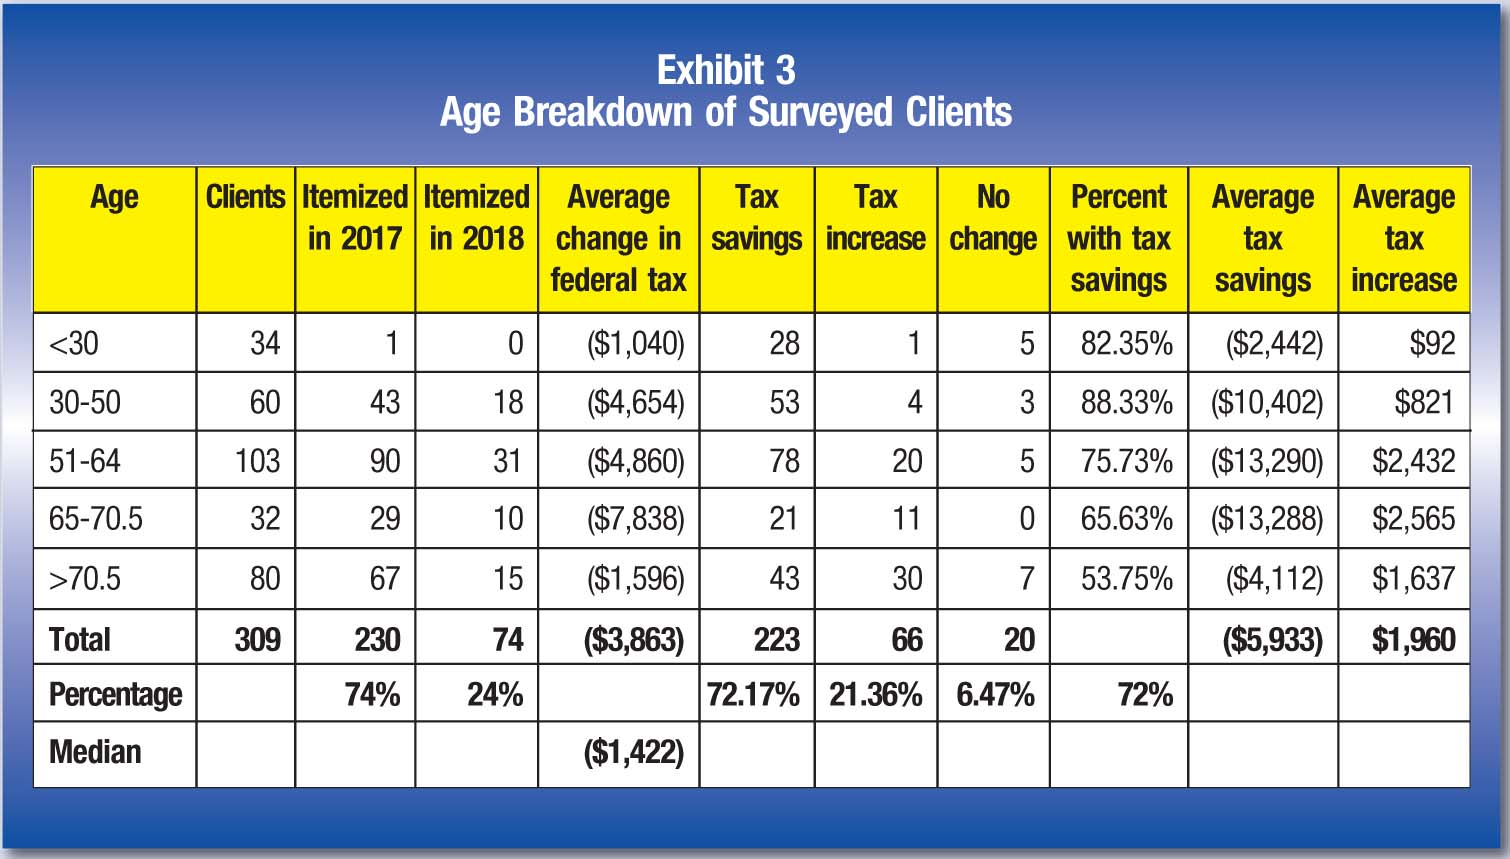 Age; Clients; Itemized in 2017; Itemized in 2018; Average change in federal tax; Tax savings; Tax increase; No change; Percent with tax savings; Average tax savings; Average tax increase <30; 34; 1; 0; ($1,040); 28; 1; 5; 82.35%; ($2,442); $92 30-50; 60; 43; 18; ($4,654); 53; 4; 3; 88.33%; ($10,402); $821 51-64; 103; 90; 31; ($4,860); 78; 20; 5; 75.73%; ($13,290); $2,432 65-70.5; 32; 29; 10; ($7,838); 21; 11; 0; 65.63%; ($13,288); $2,565 >70.5; 80; 67; 15; ($1,596); 43; 30; 7; 53.75%; ($4,112); $1,637 Total; 309; 230; 74; ($3,863); 223; 66; 20; ($5,933); $1,960 Percentage; 74%; 24%; 72.17%; 21.36%; 6.47%; 72% Median; ($1,422)